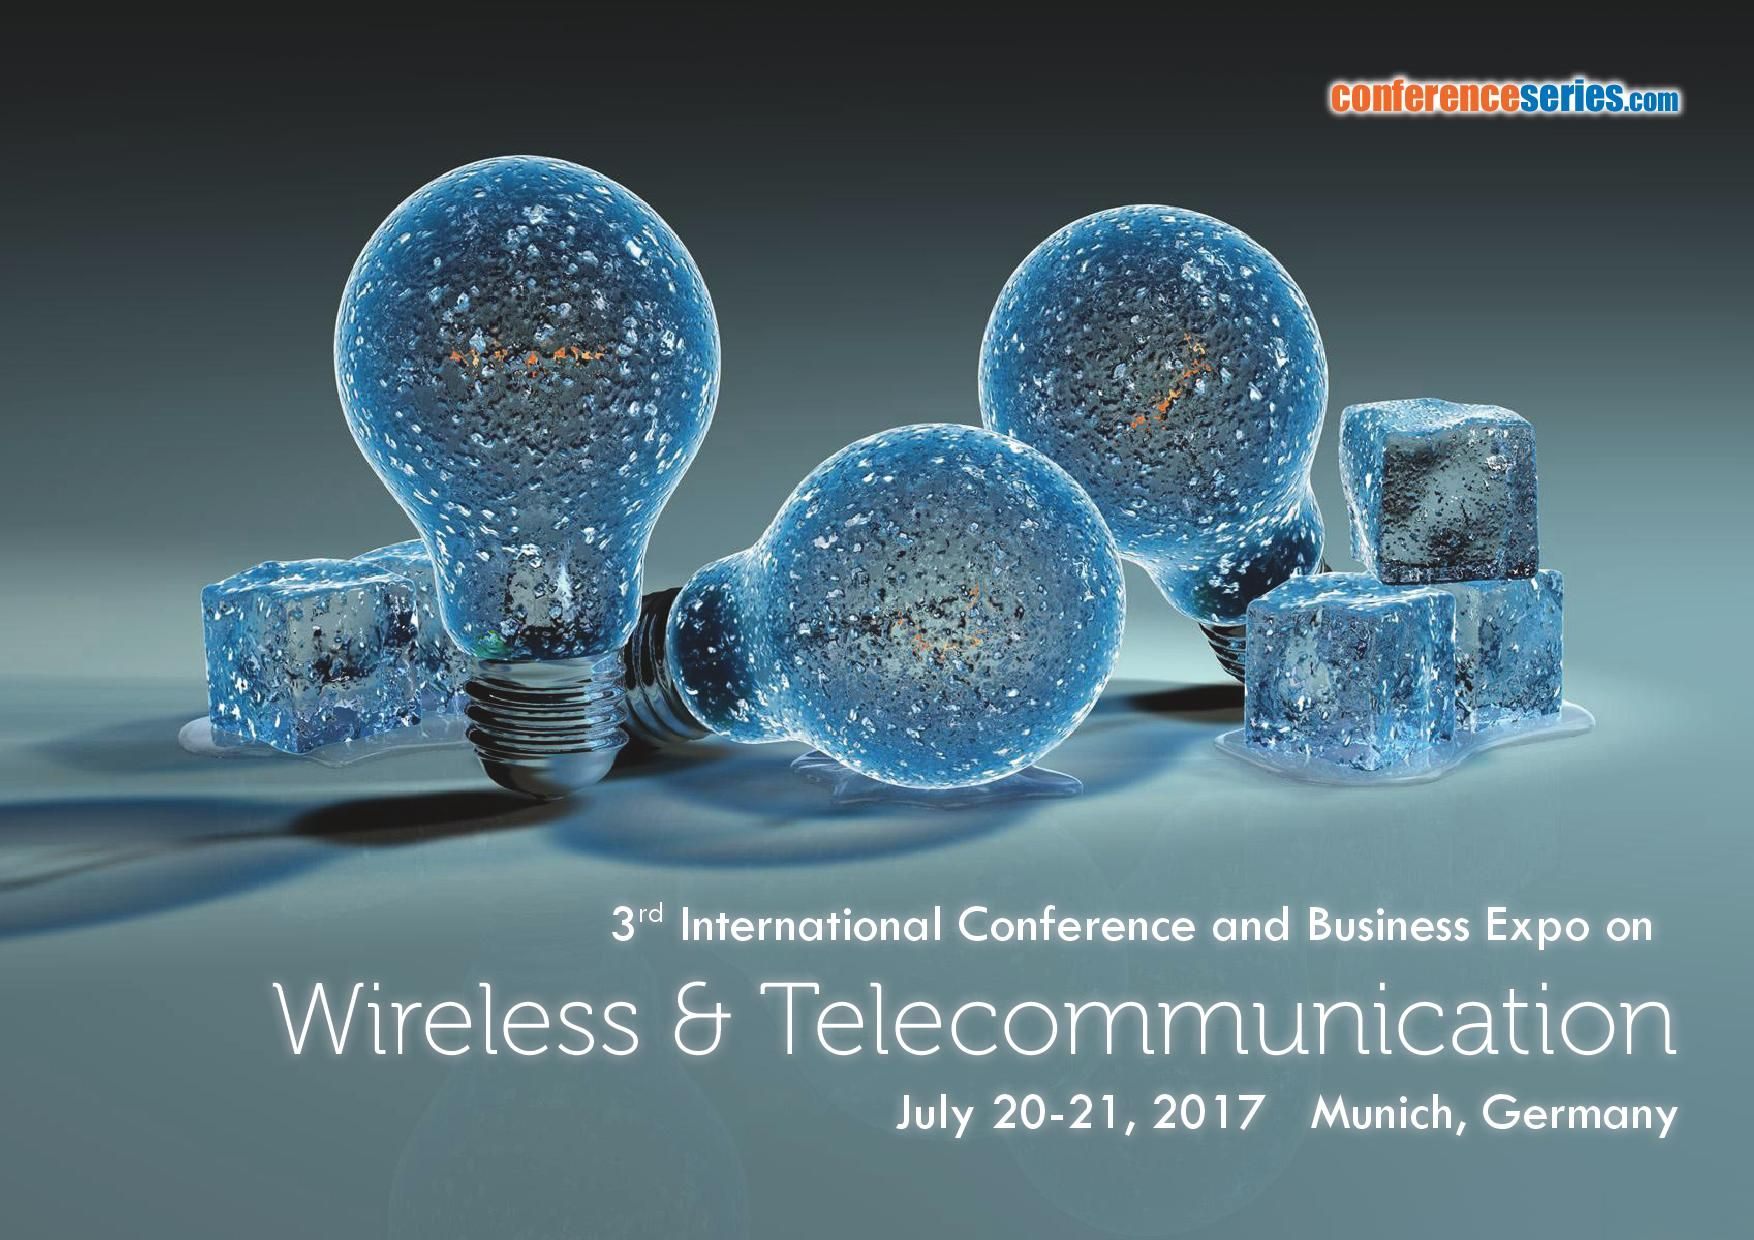 3rd International Conference And Business Expo On Wireless Circuit Board Wallpaper Wallpapers Hd Quality Telecommunication July 20 21 2017 Munich Germany